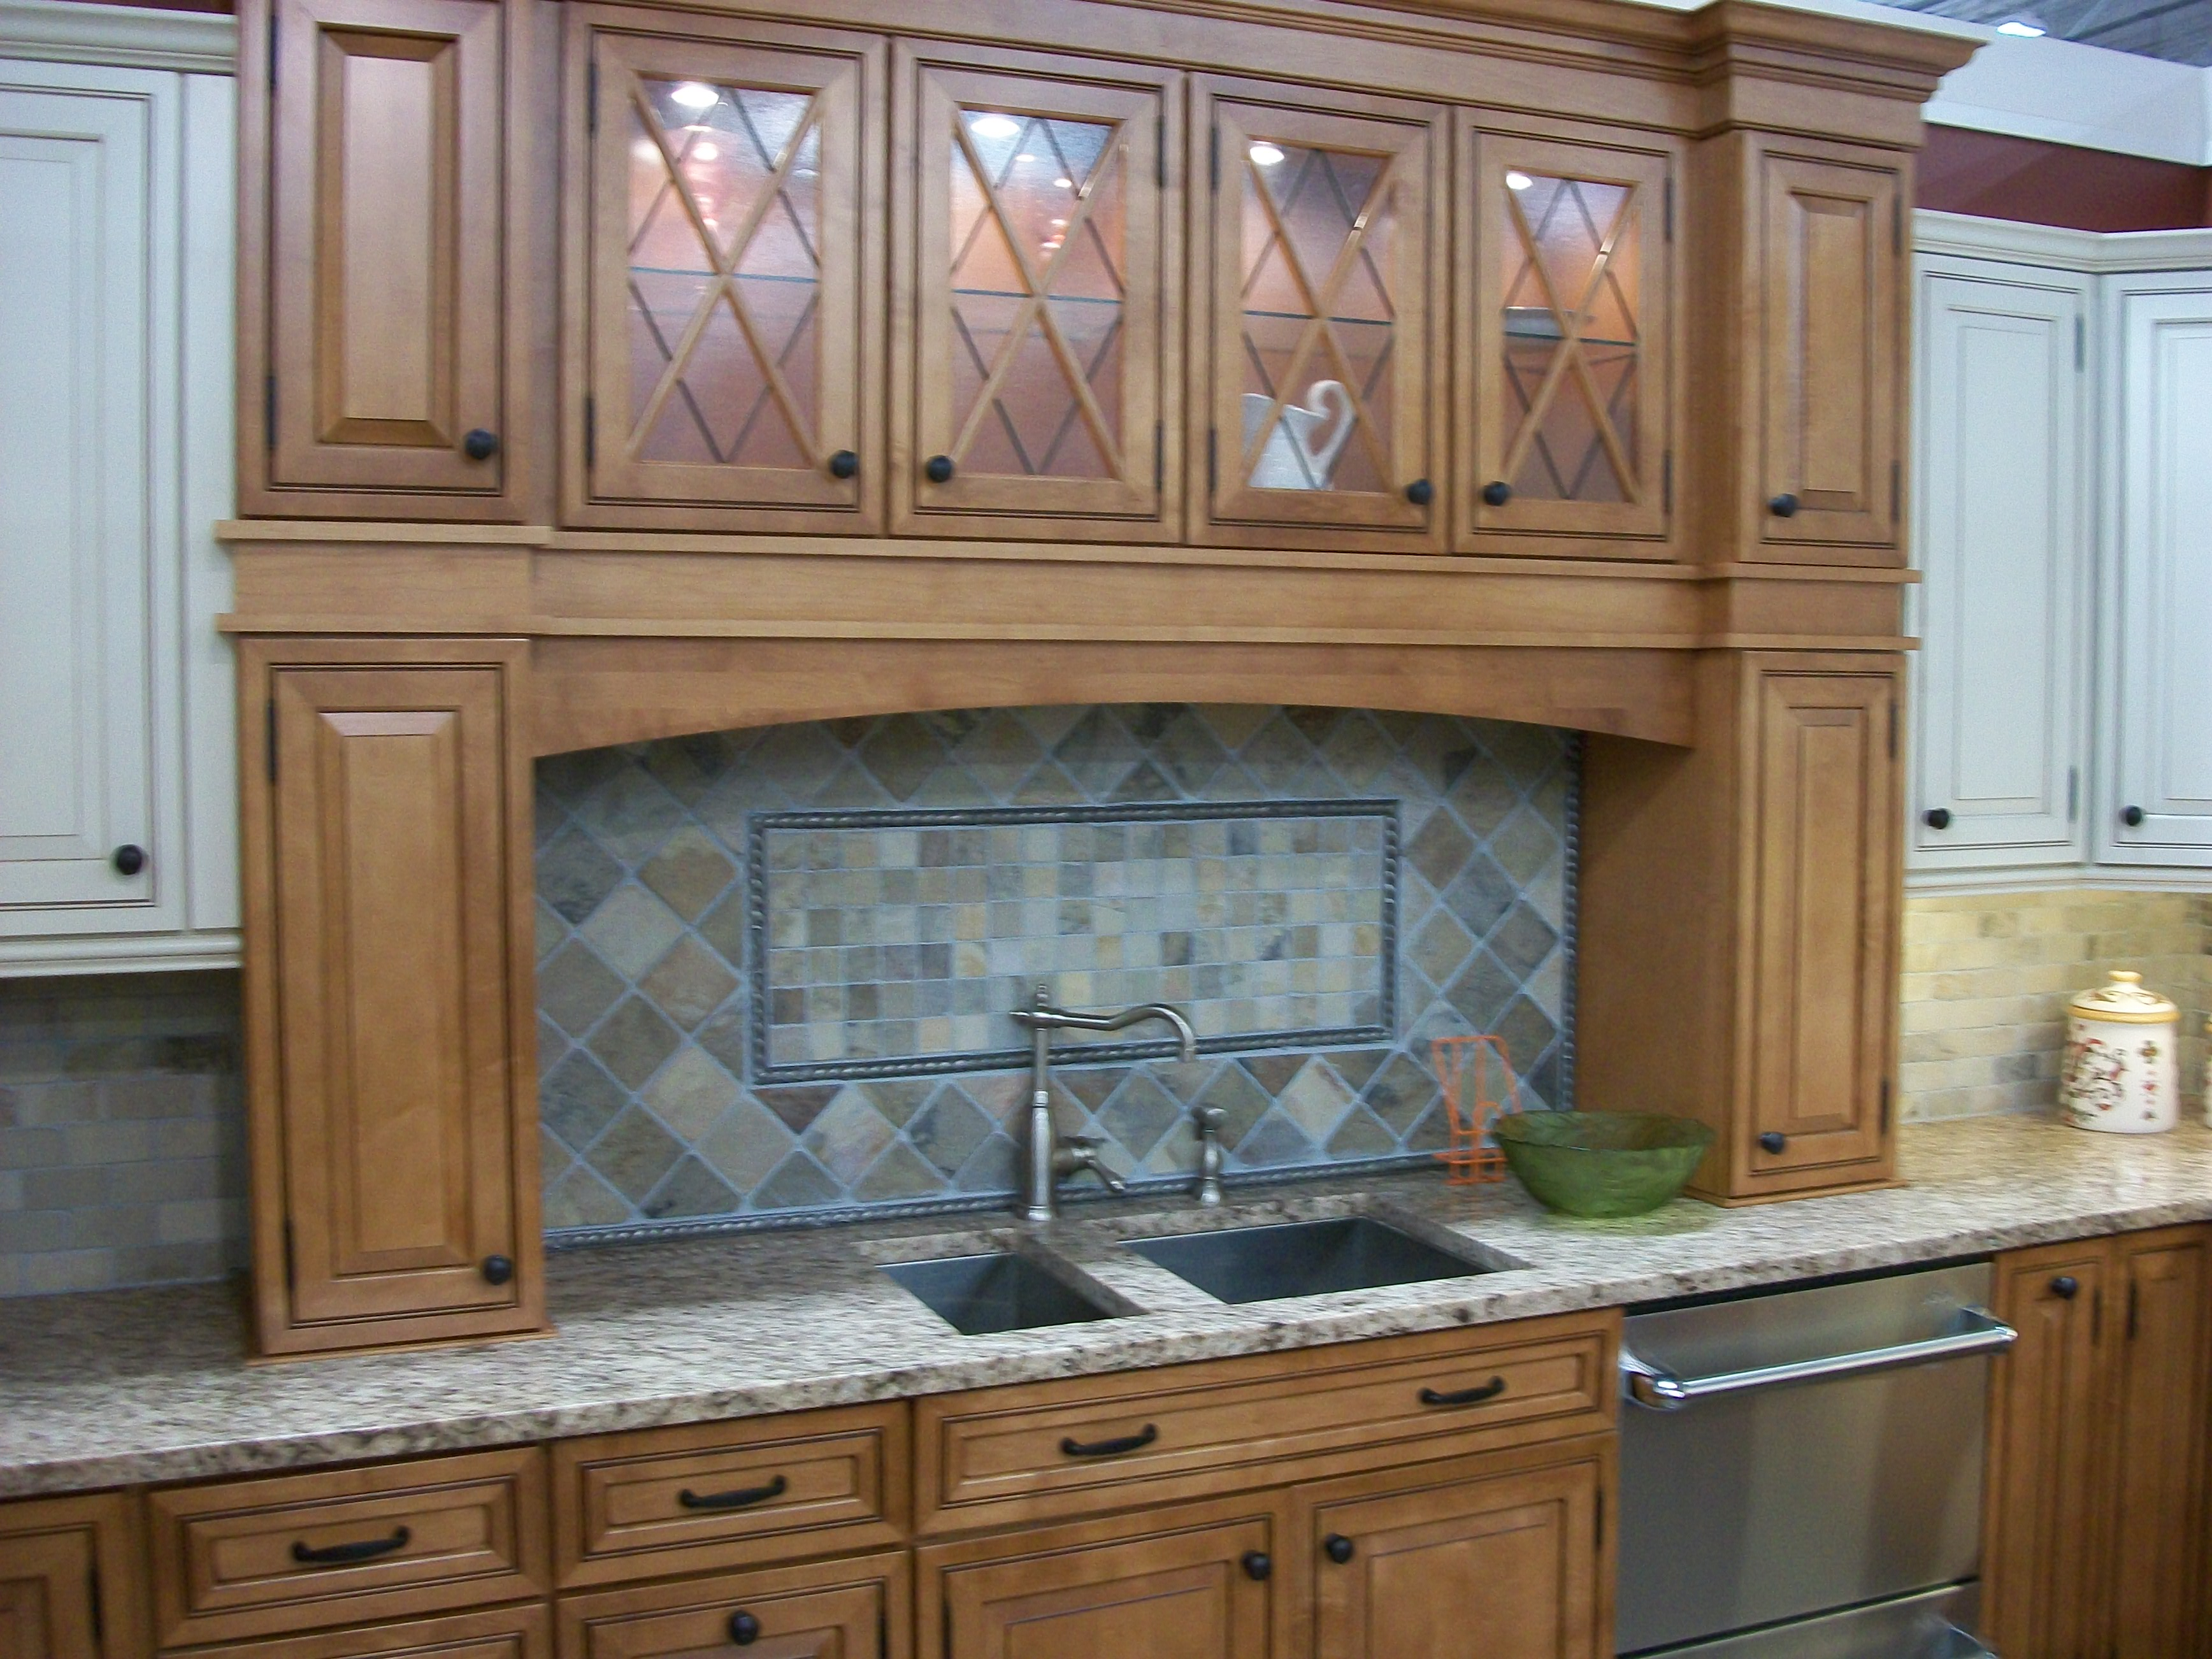 3472x2604px 10 Amazing Kitchen Display Cabinets Picture in Kitchen